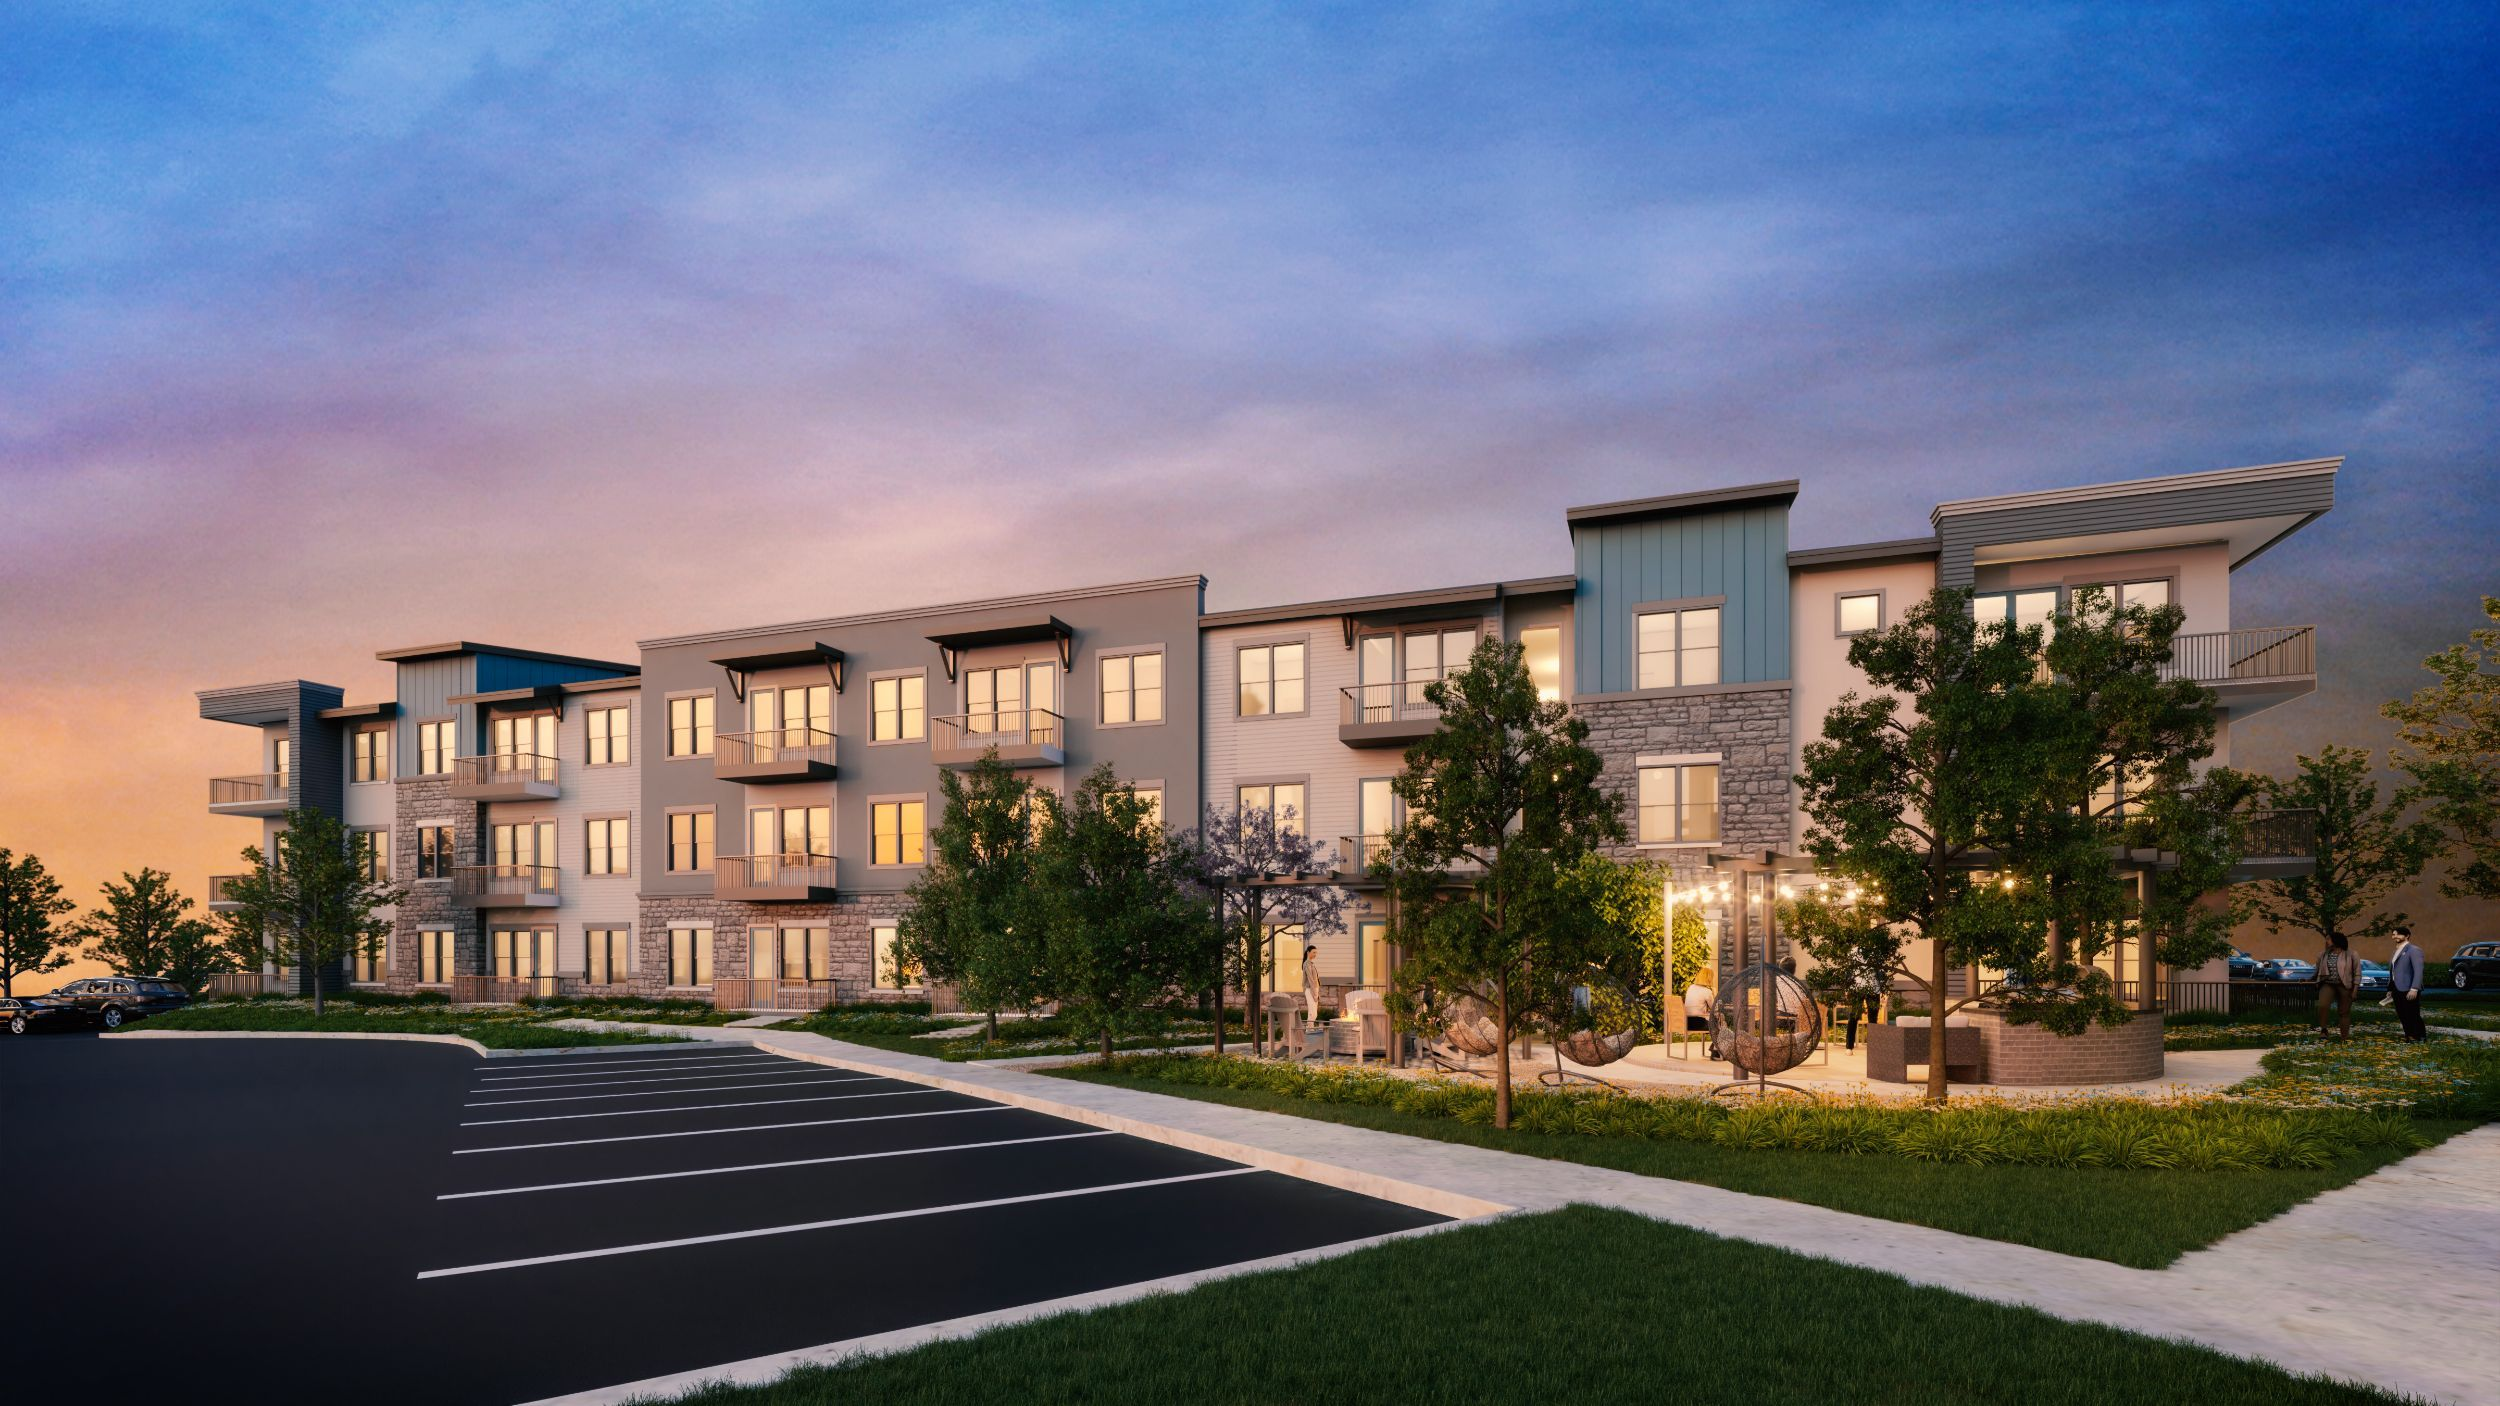 Rendering of outside of apartment building